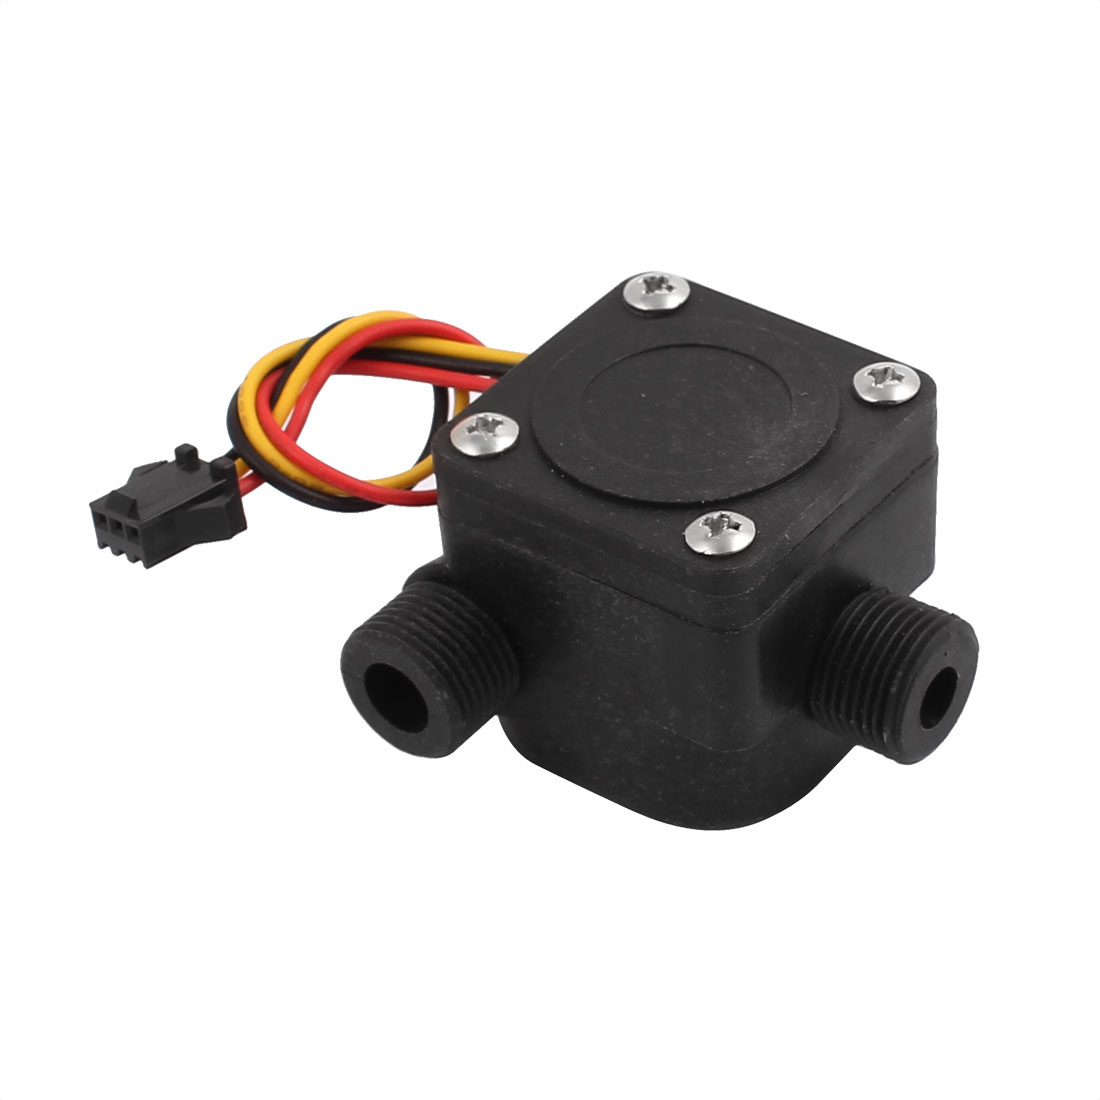 SEN-HZ16WA G3/8 Male Thread Plastic Hall Water Flow Sensor 0.5-20L/min Right Angle